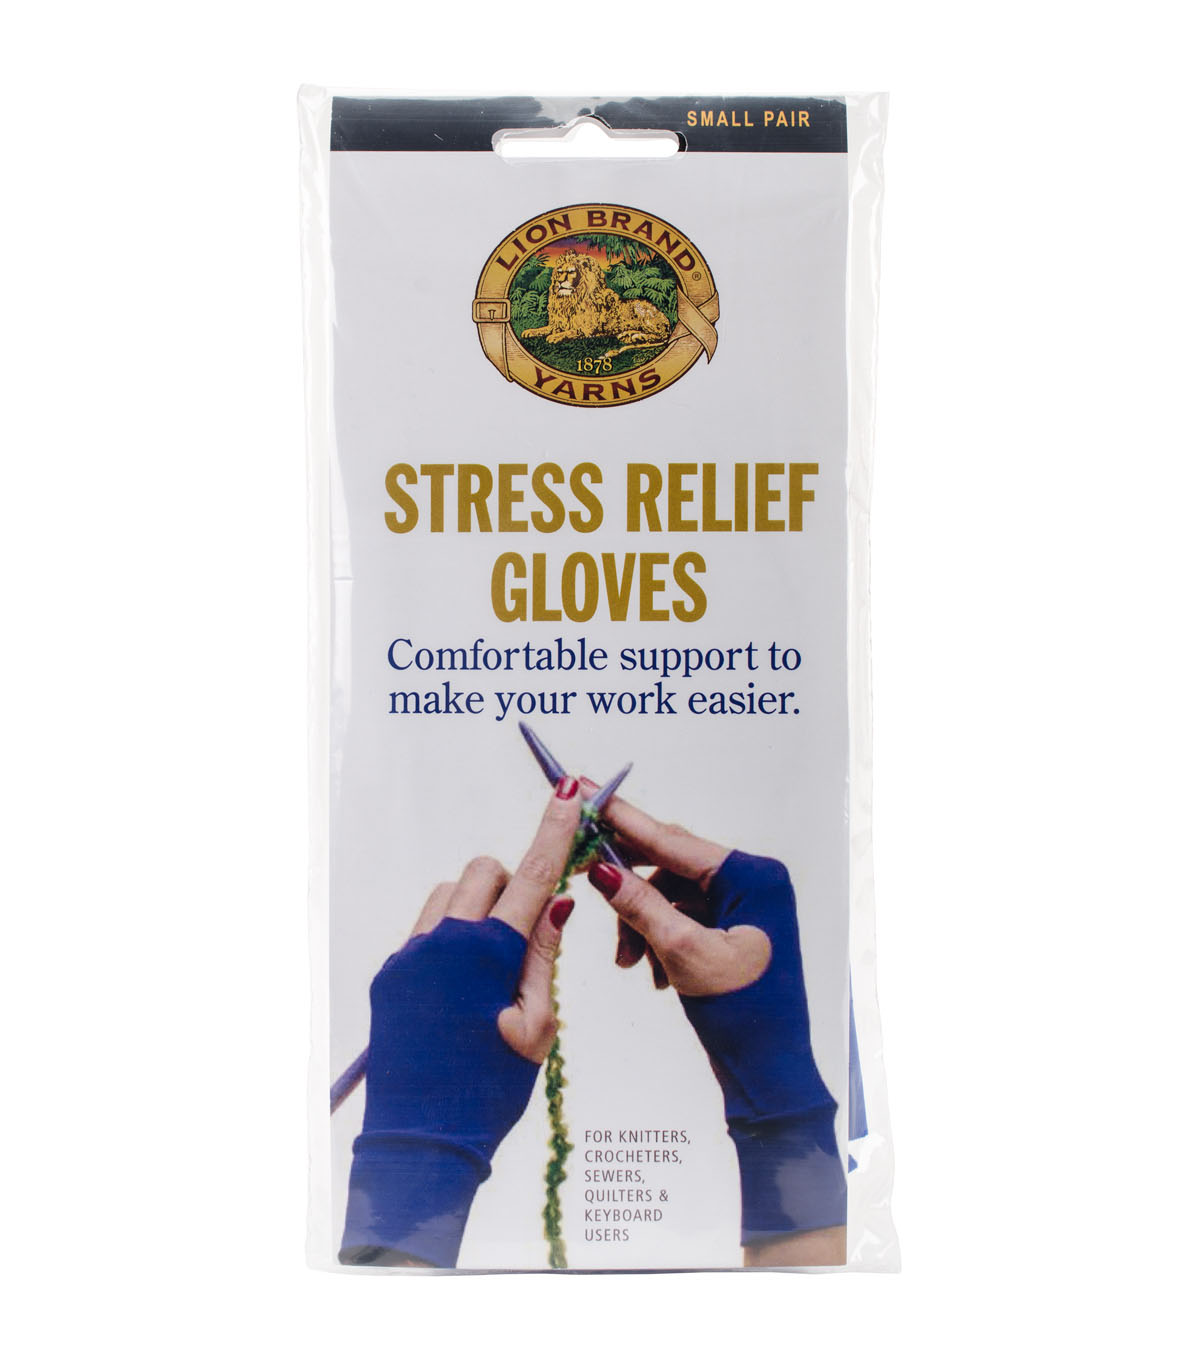 Stress Relief Gloves For Knitters-small